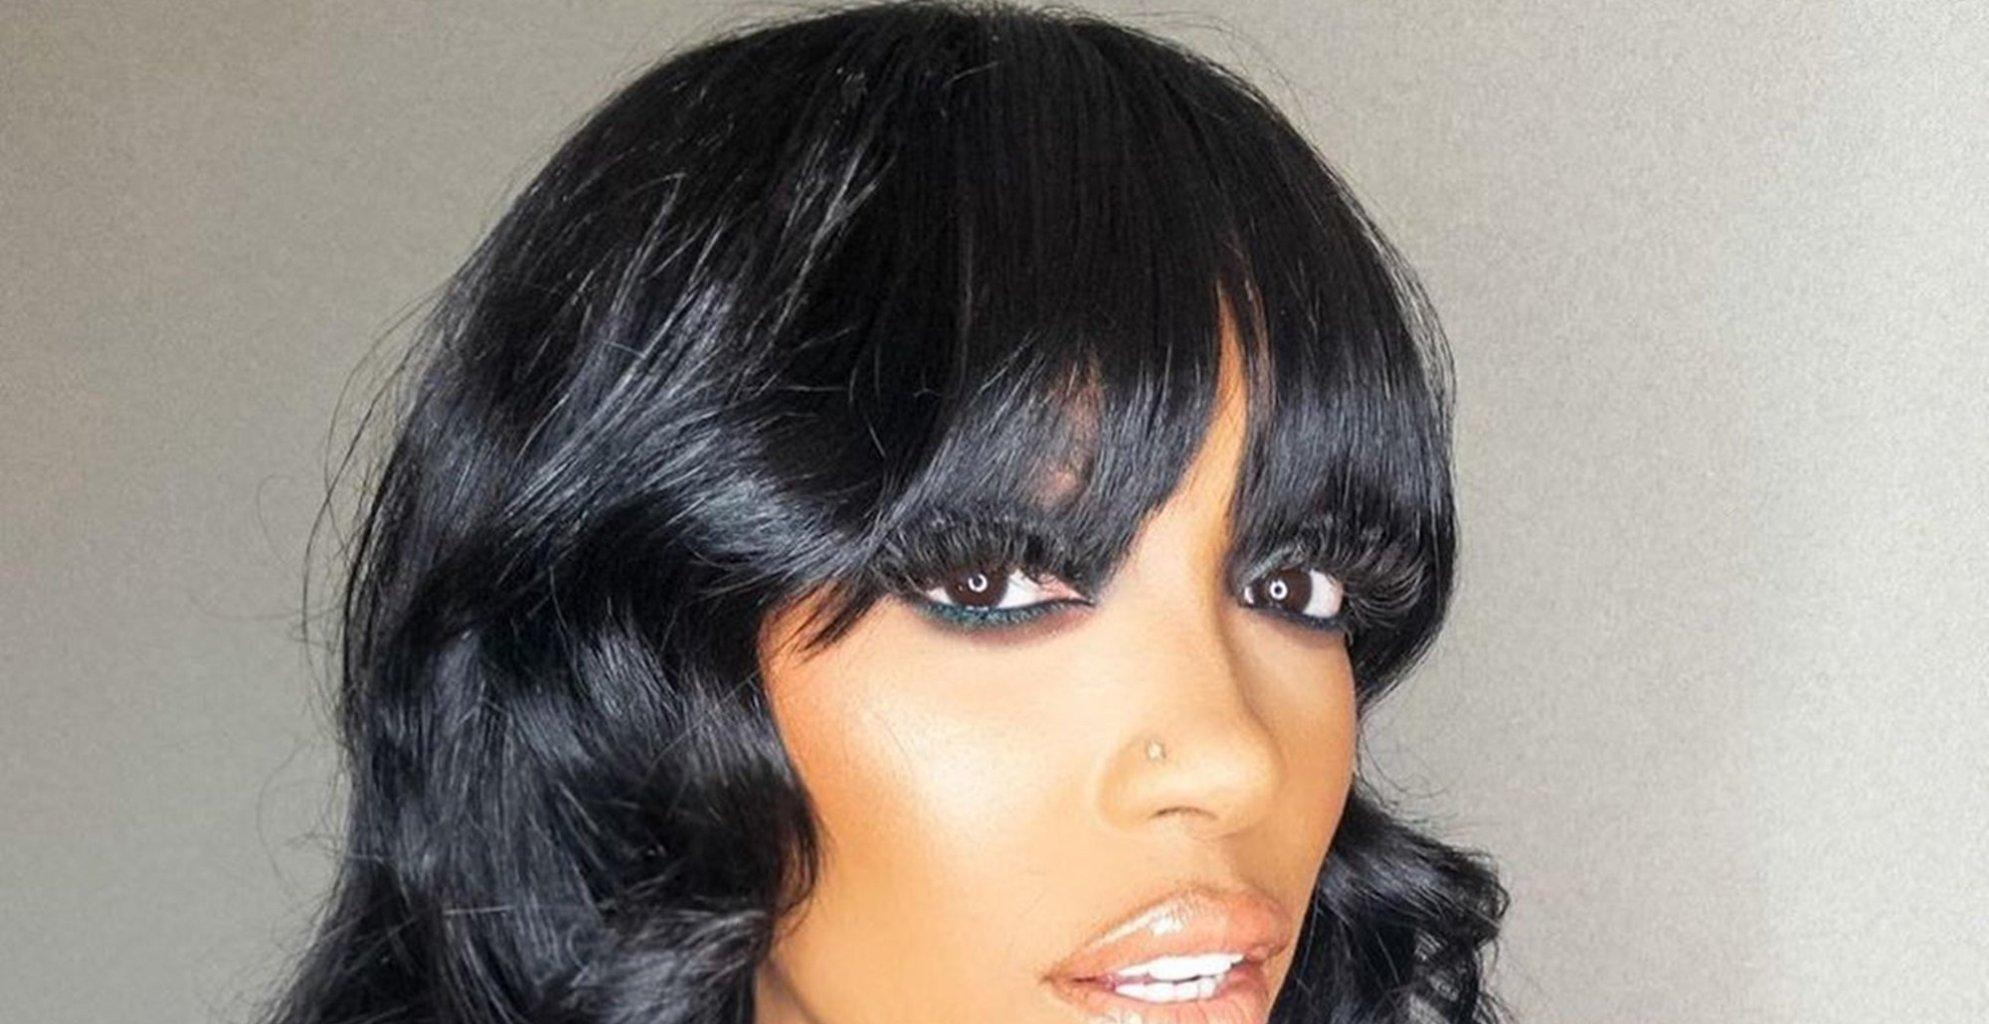 Porsha Williams Spends Thanksgiving With Her Family: See The Sweet Pics With Her Grandmother And Cousin